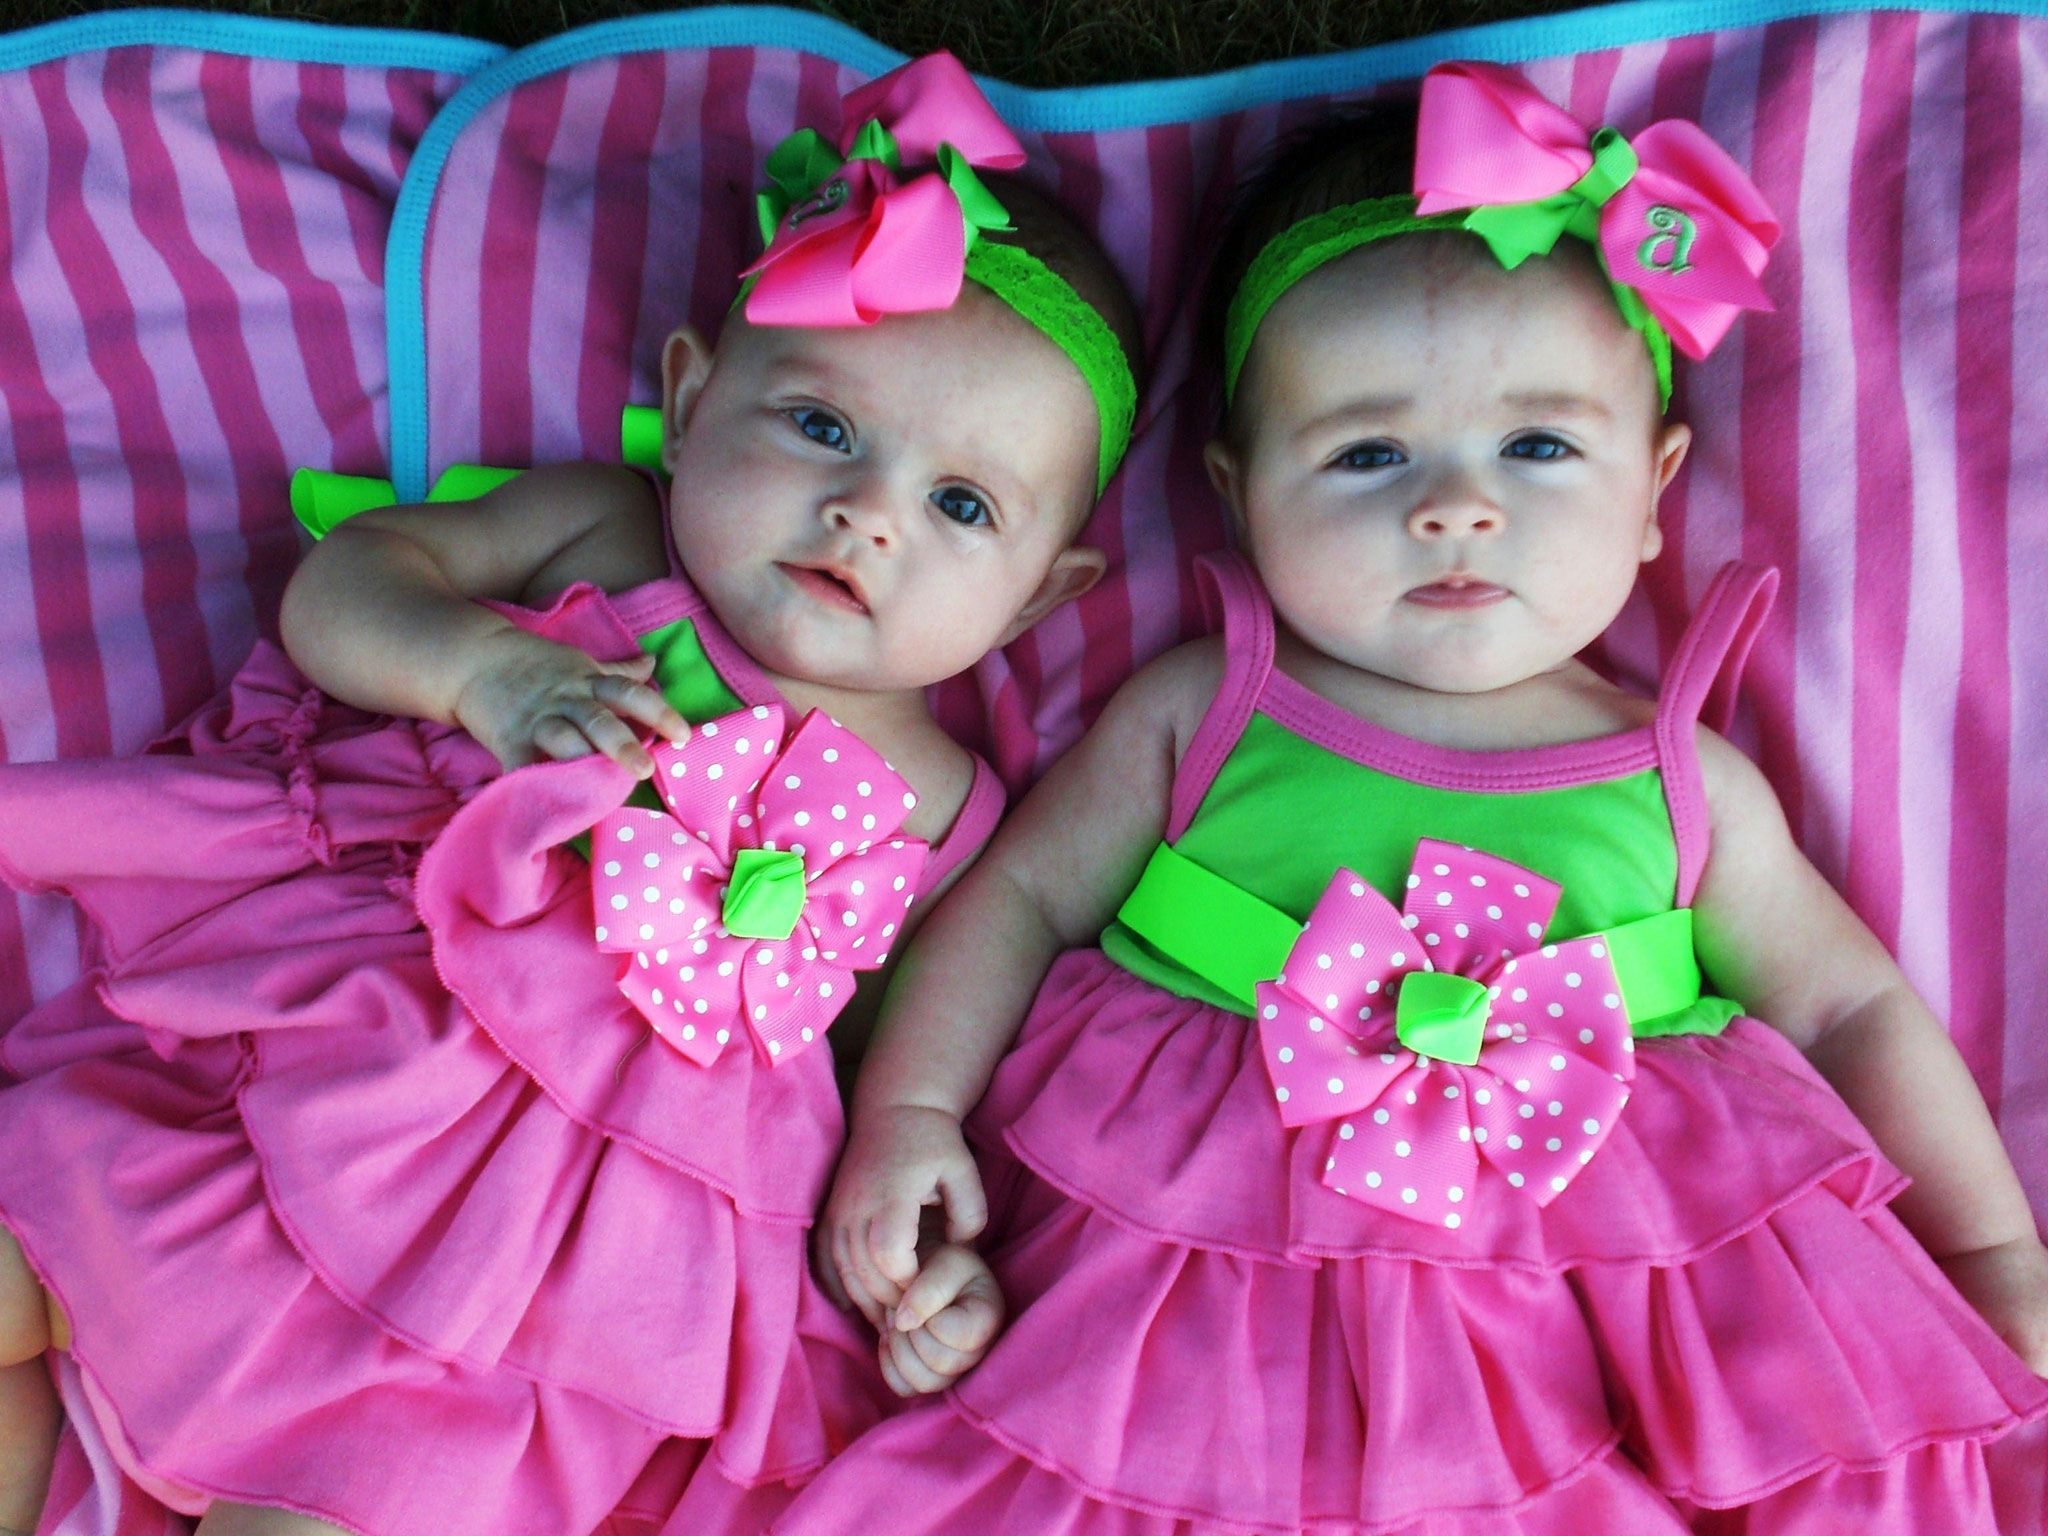 cute baby twins for free | click on image to view larger image